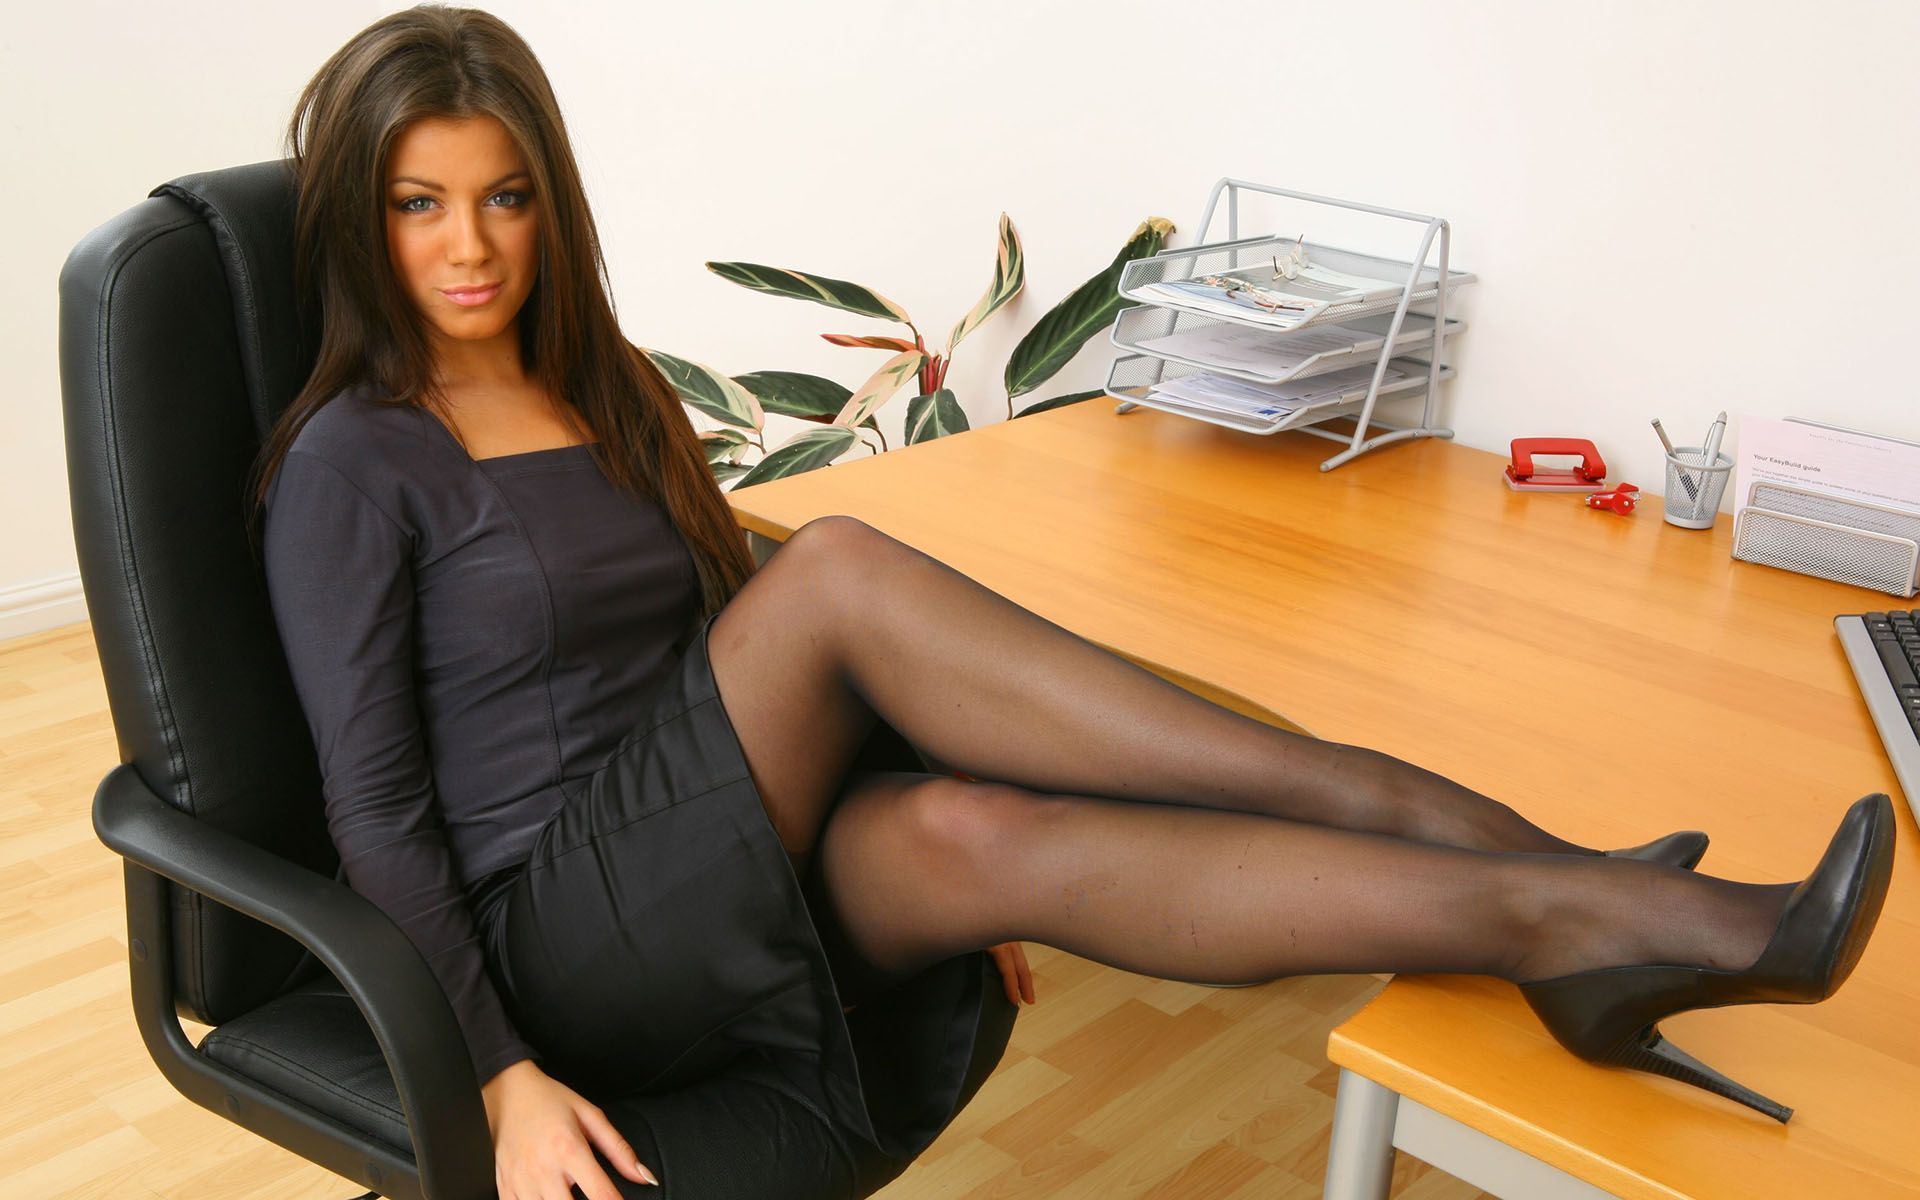 Matchless theme, Galleries fully clothed mature women